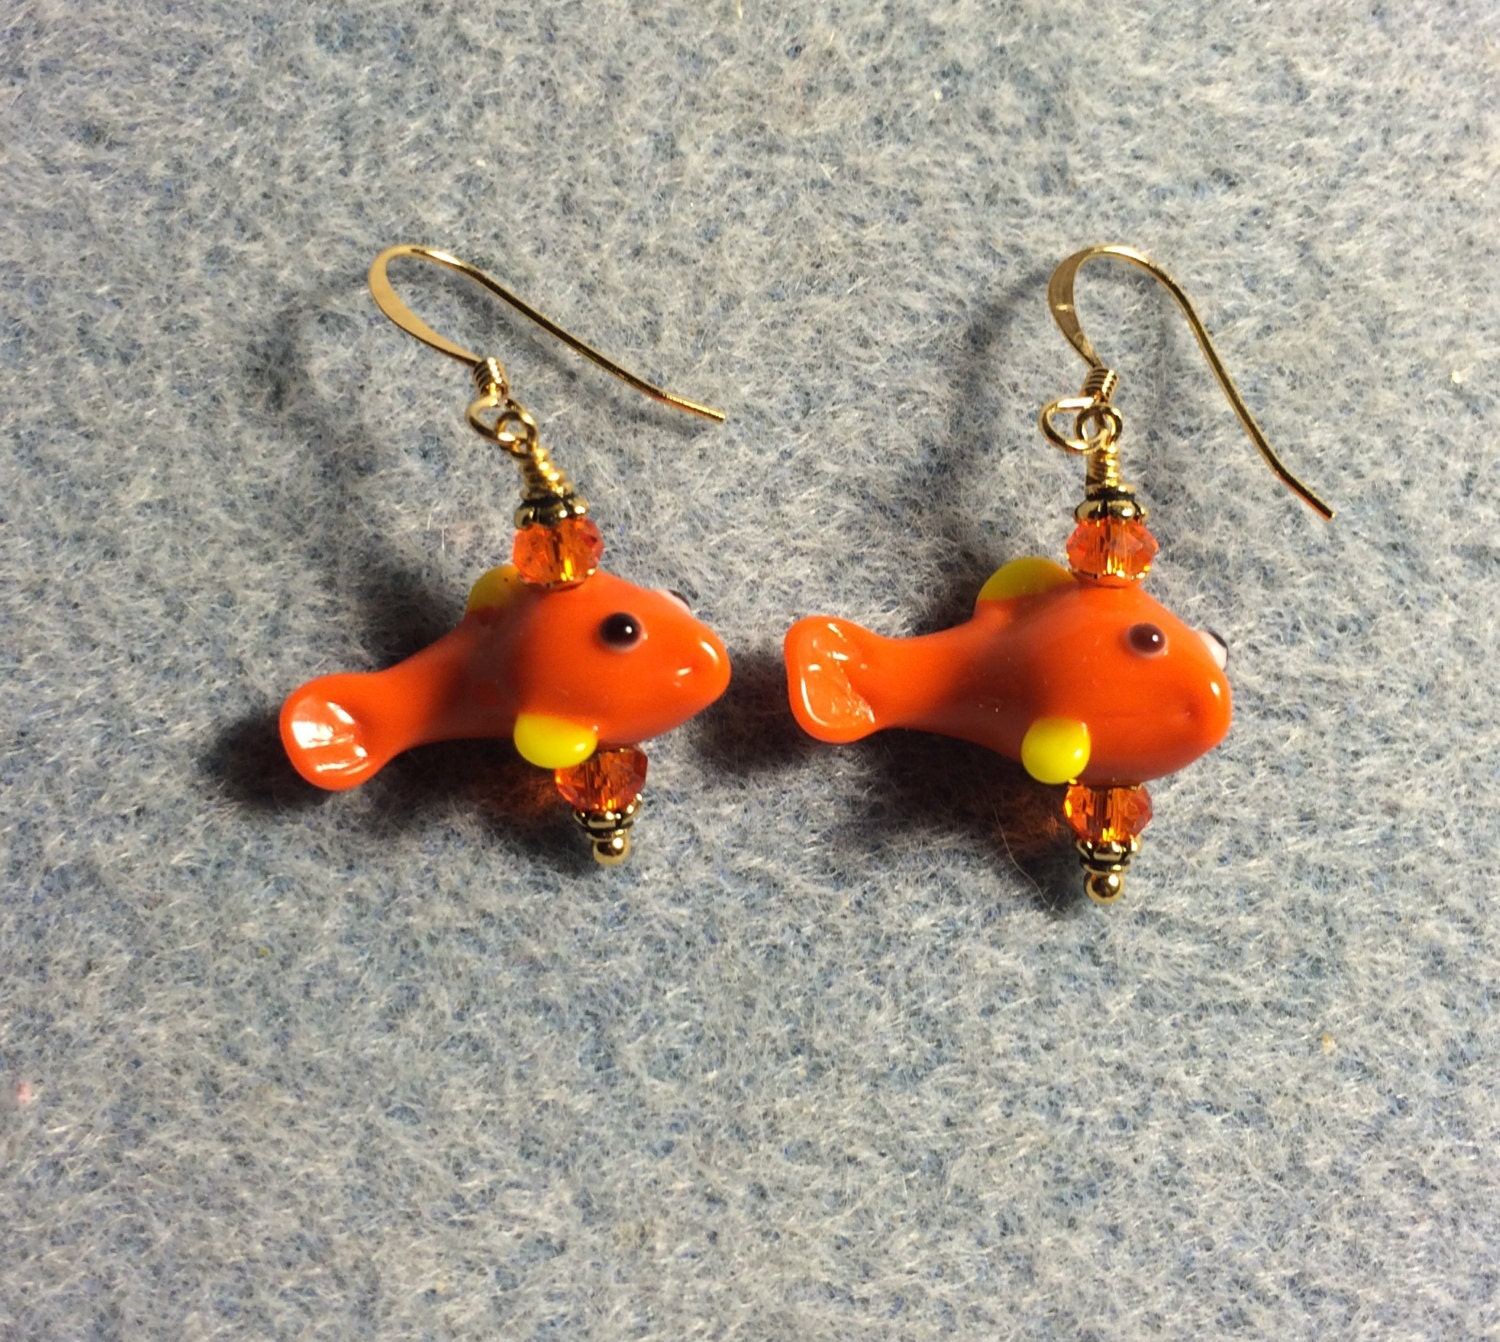 Orange and yellow lampwork koi fish bead earrings adorned with for Koi fish beads